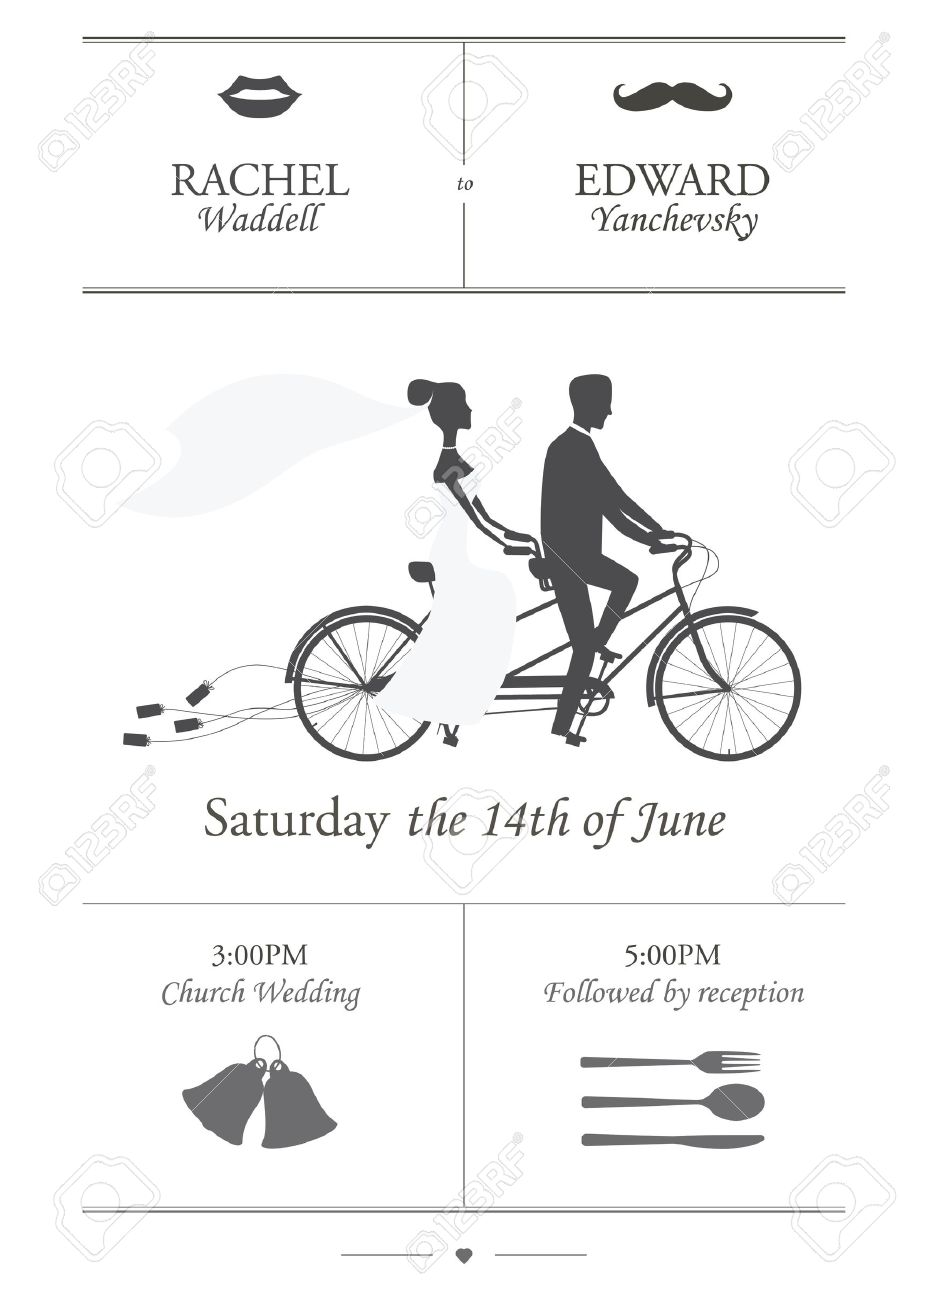 Vintage minimalistic wedding invitation with bride and groom riding tandem bicycle dragging cans Stock Vector - 17122598